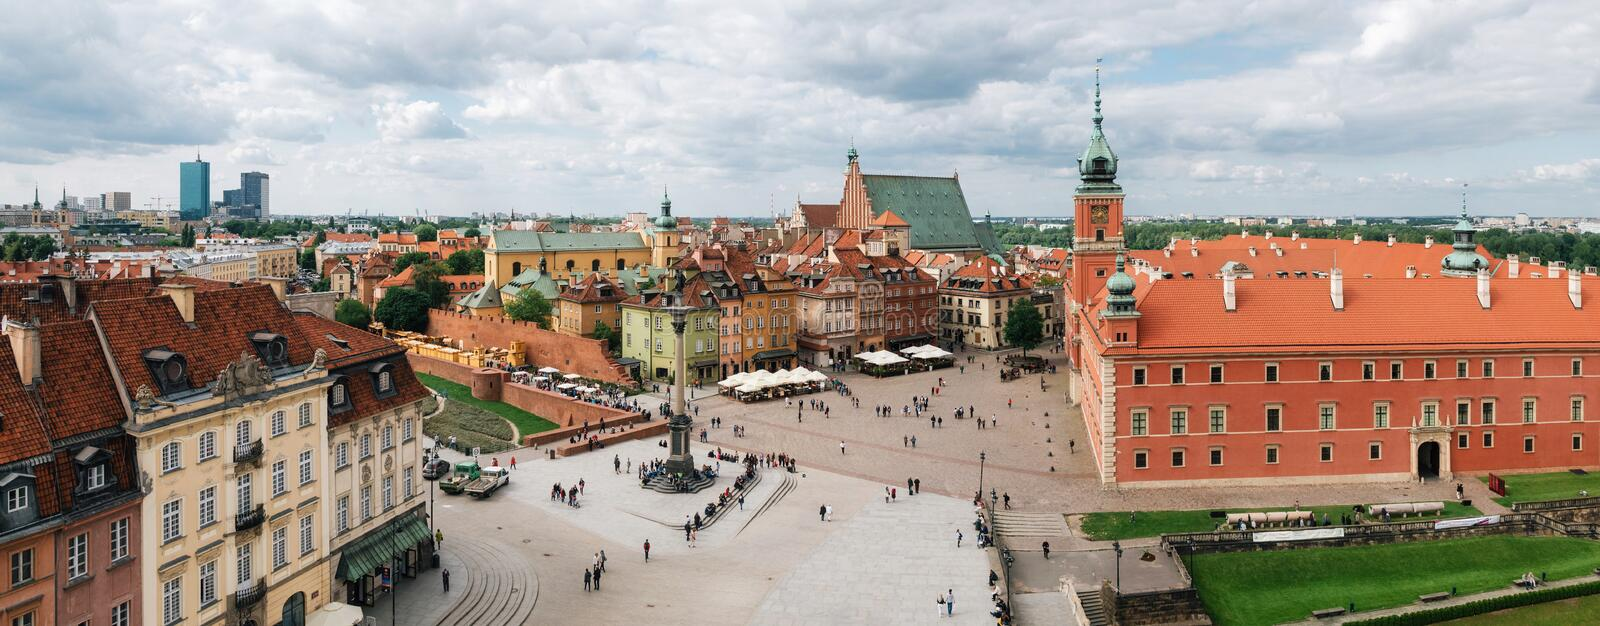 Panoramic view of Stare Miasto in Warsaw Old town, Poland stock images